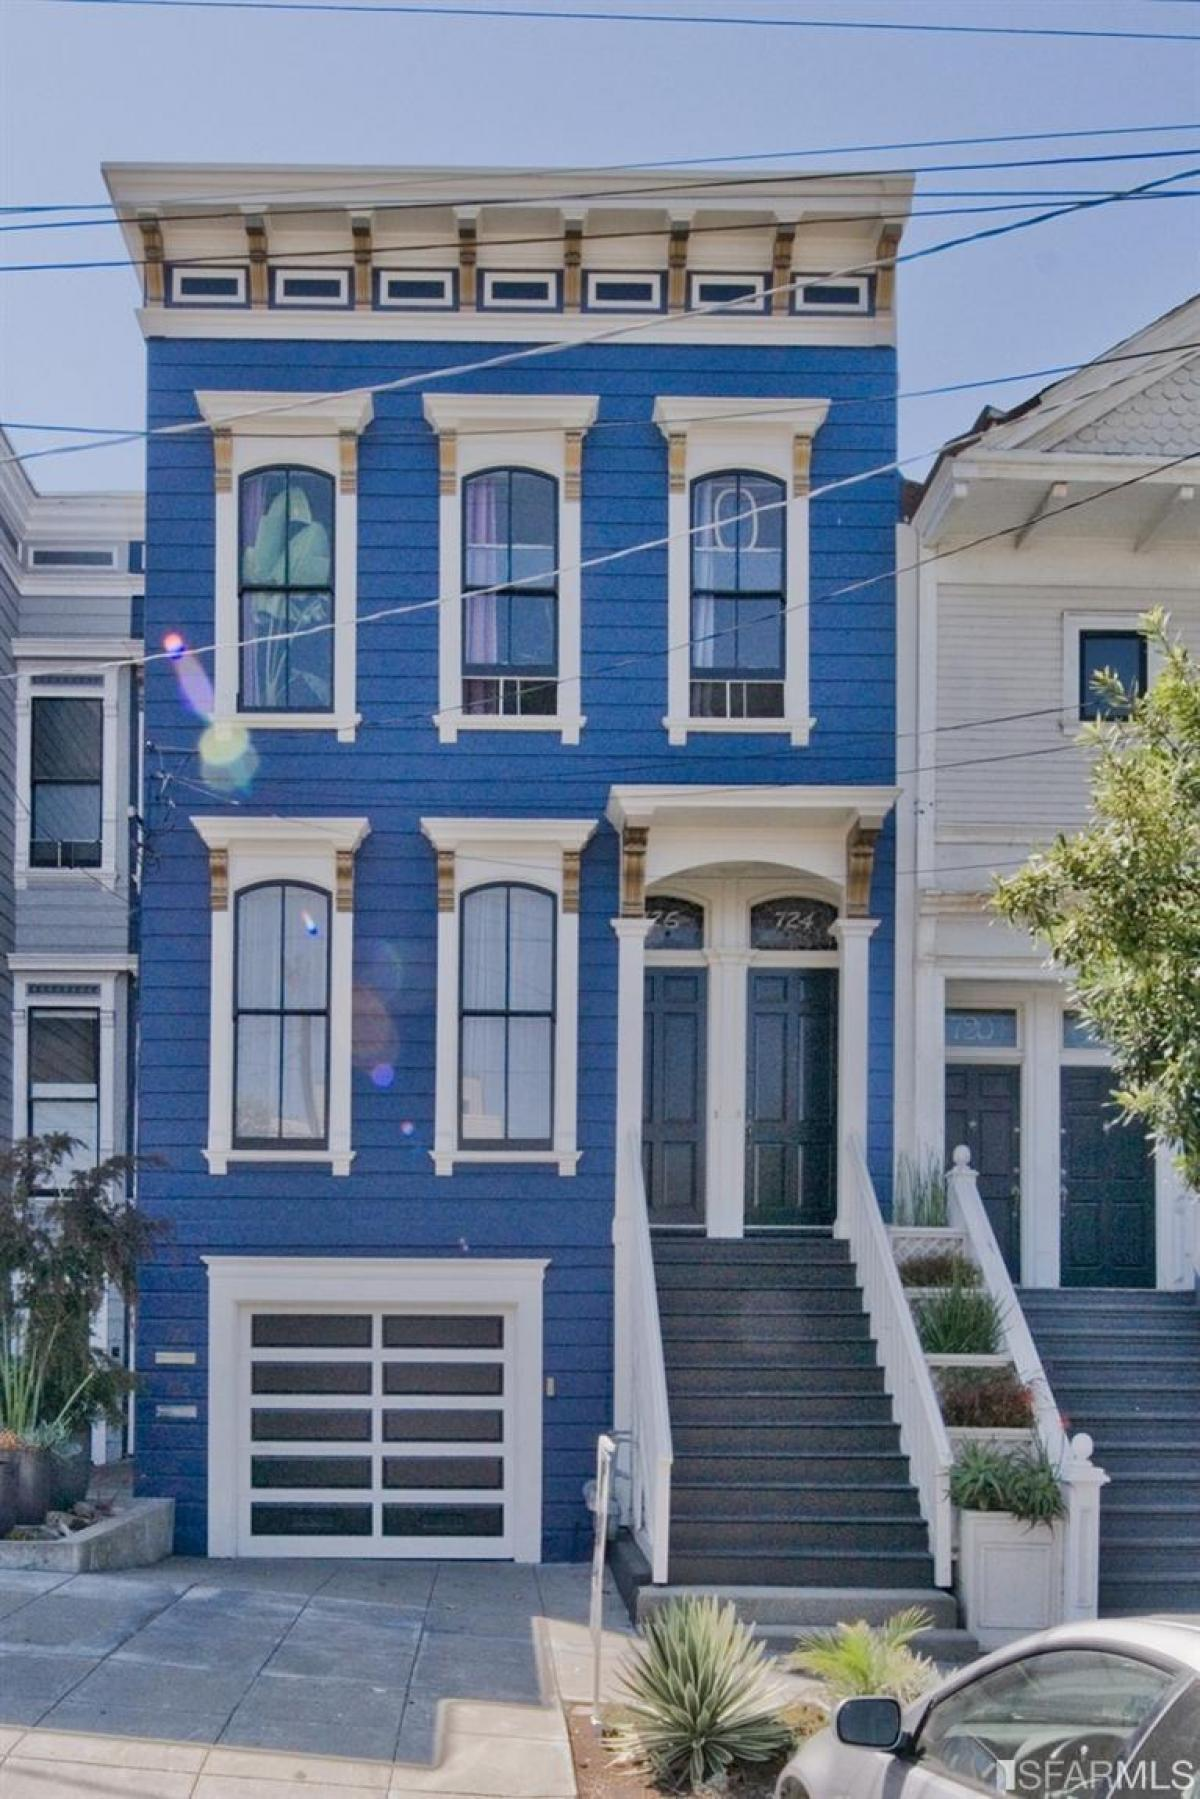 Property listed For Rent in San Francisco, California, United States